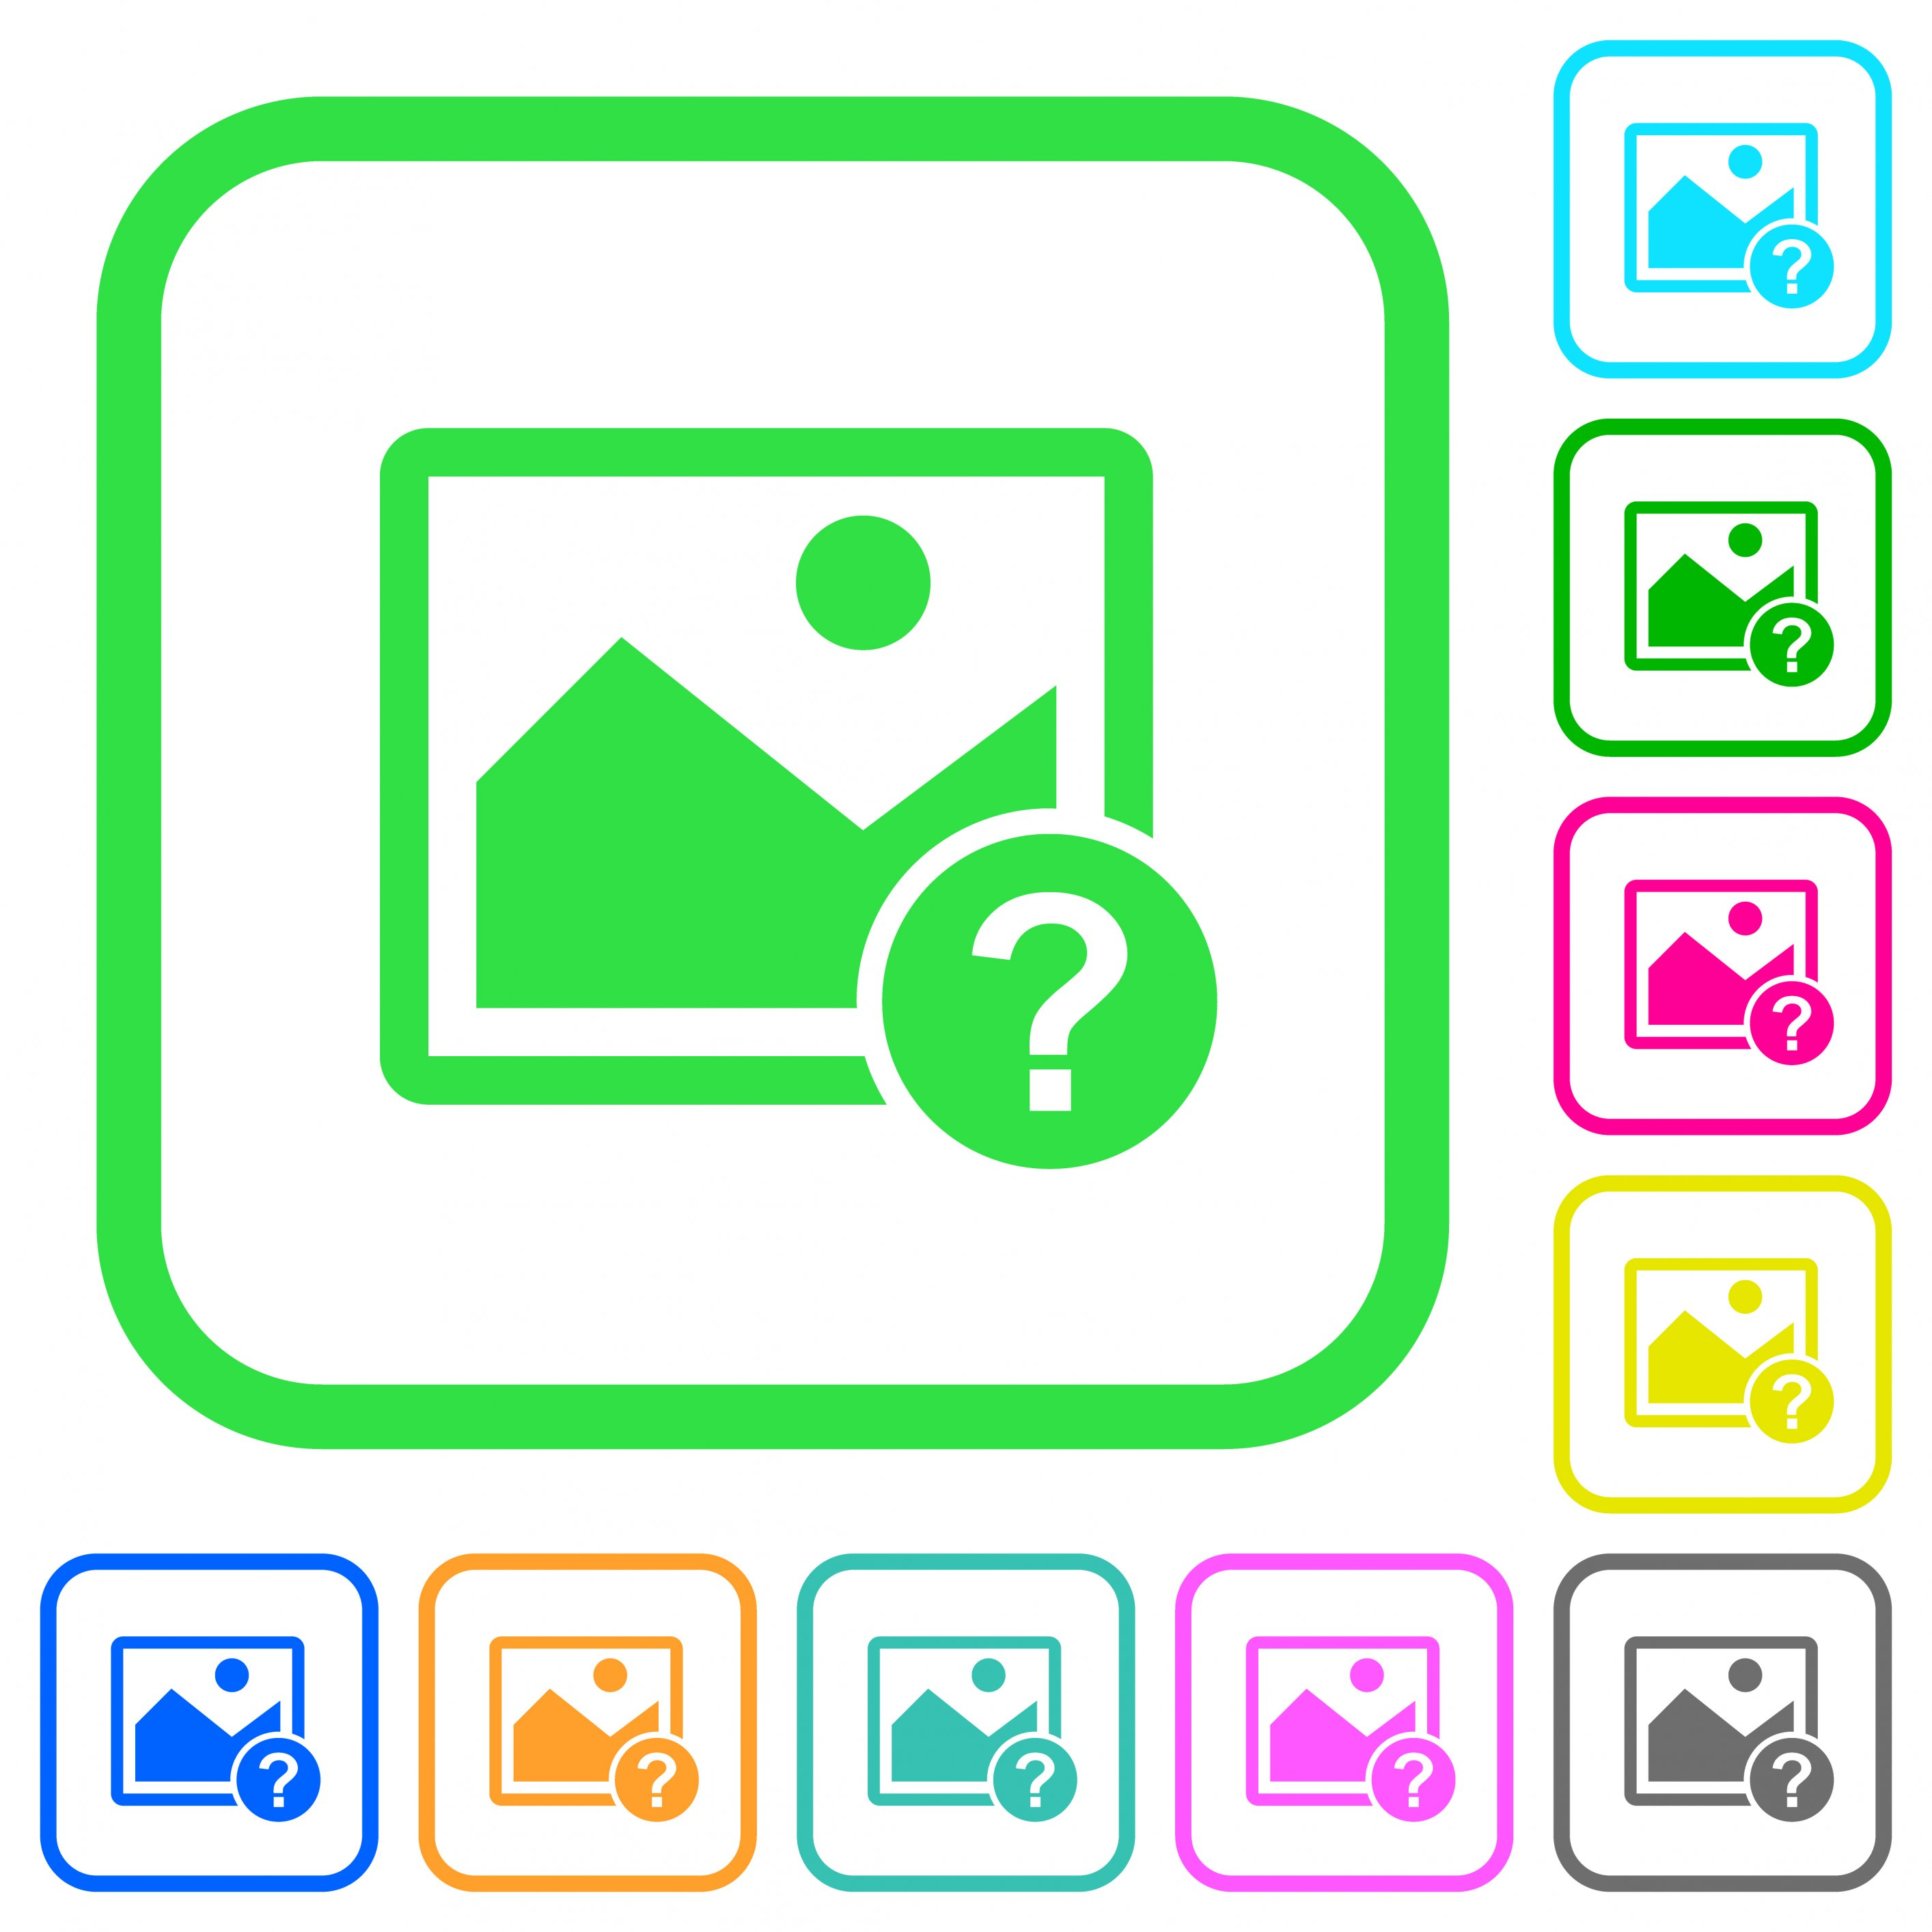 Unknown image vivid colored flat icons in curved borders on white background - Free image